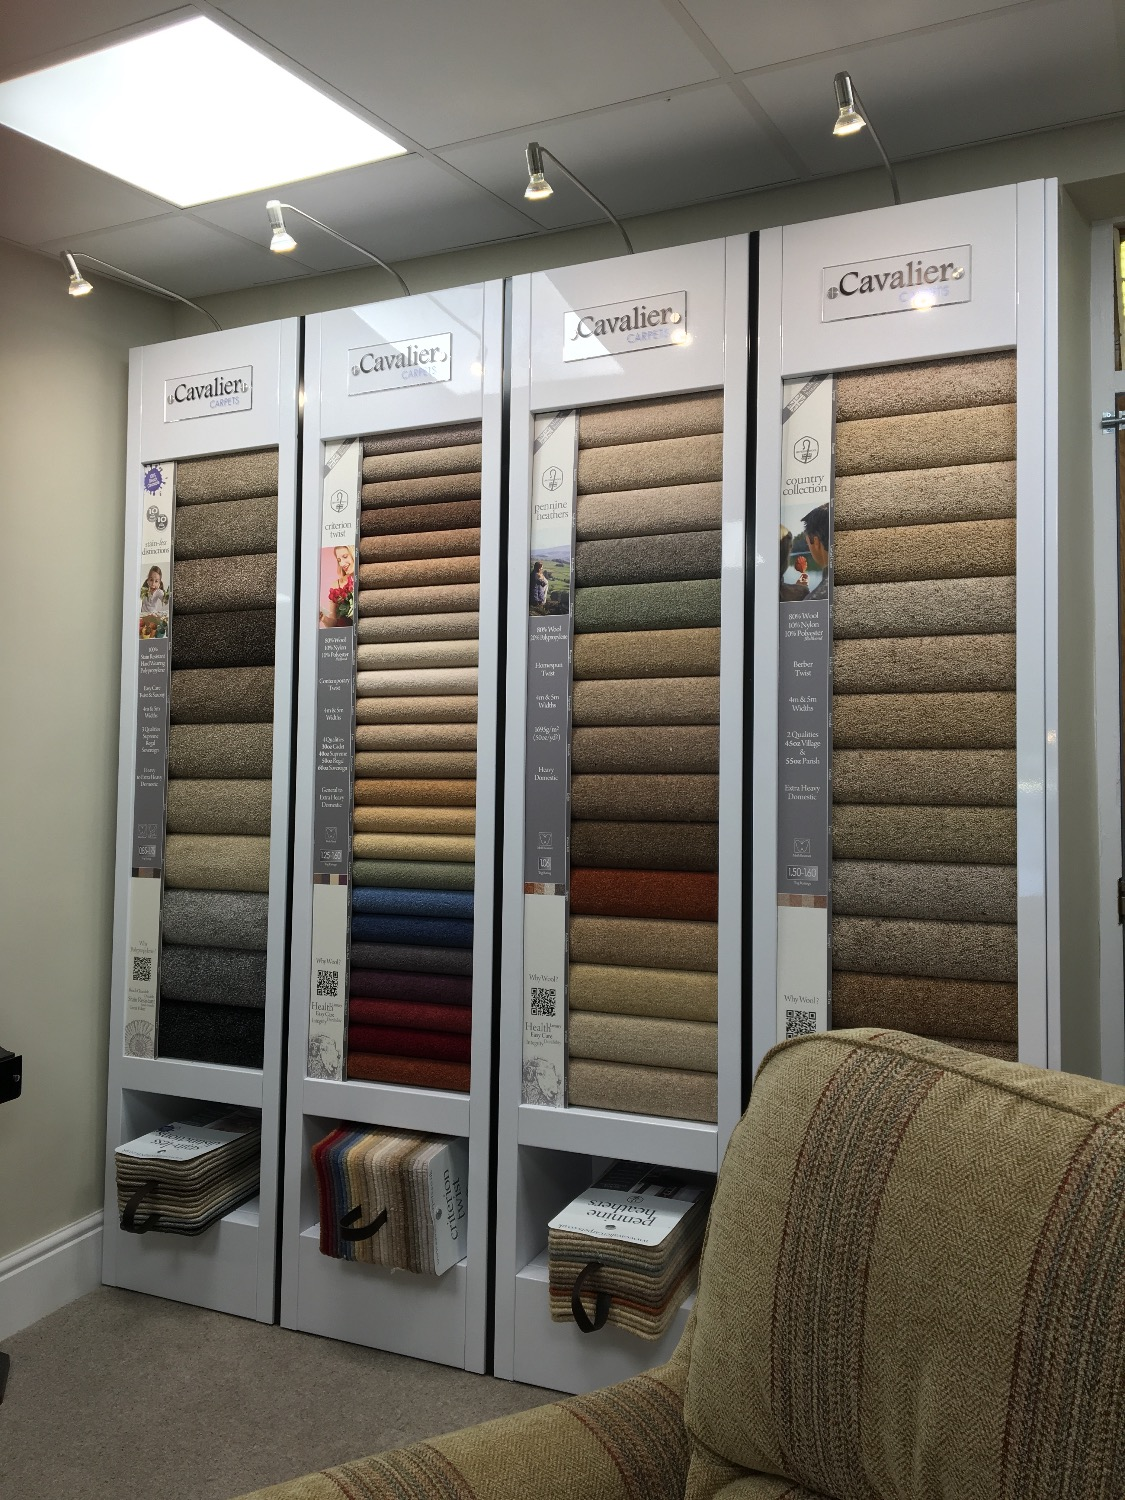 Cavalier Carpets at The Byrom Group